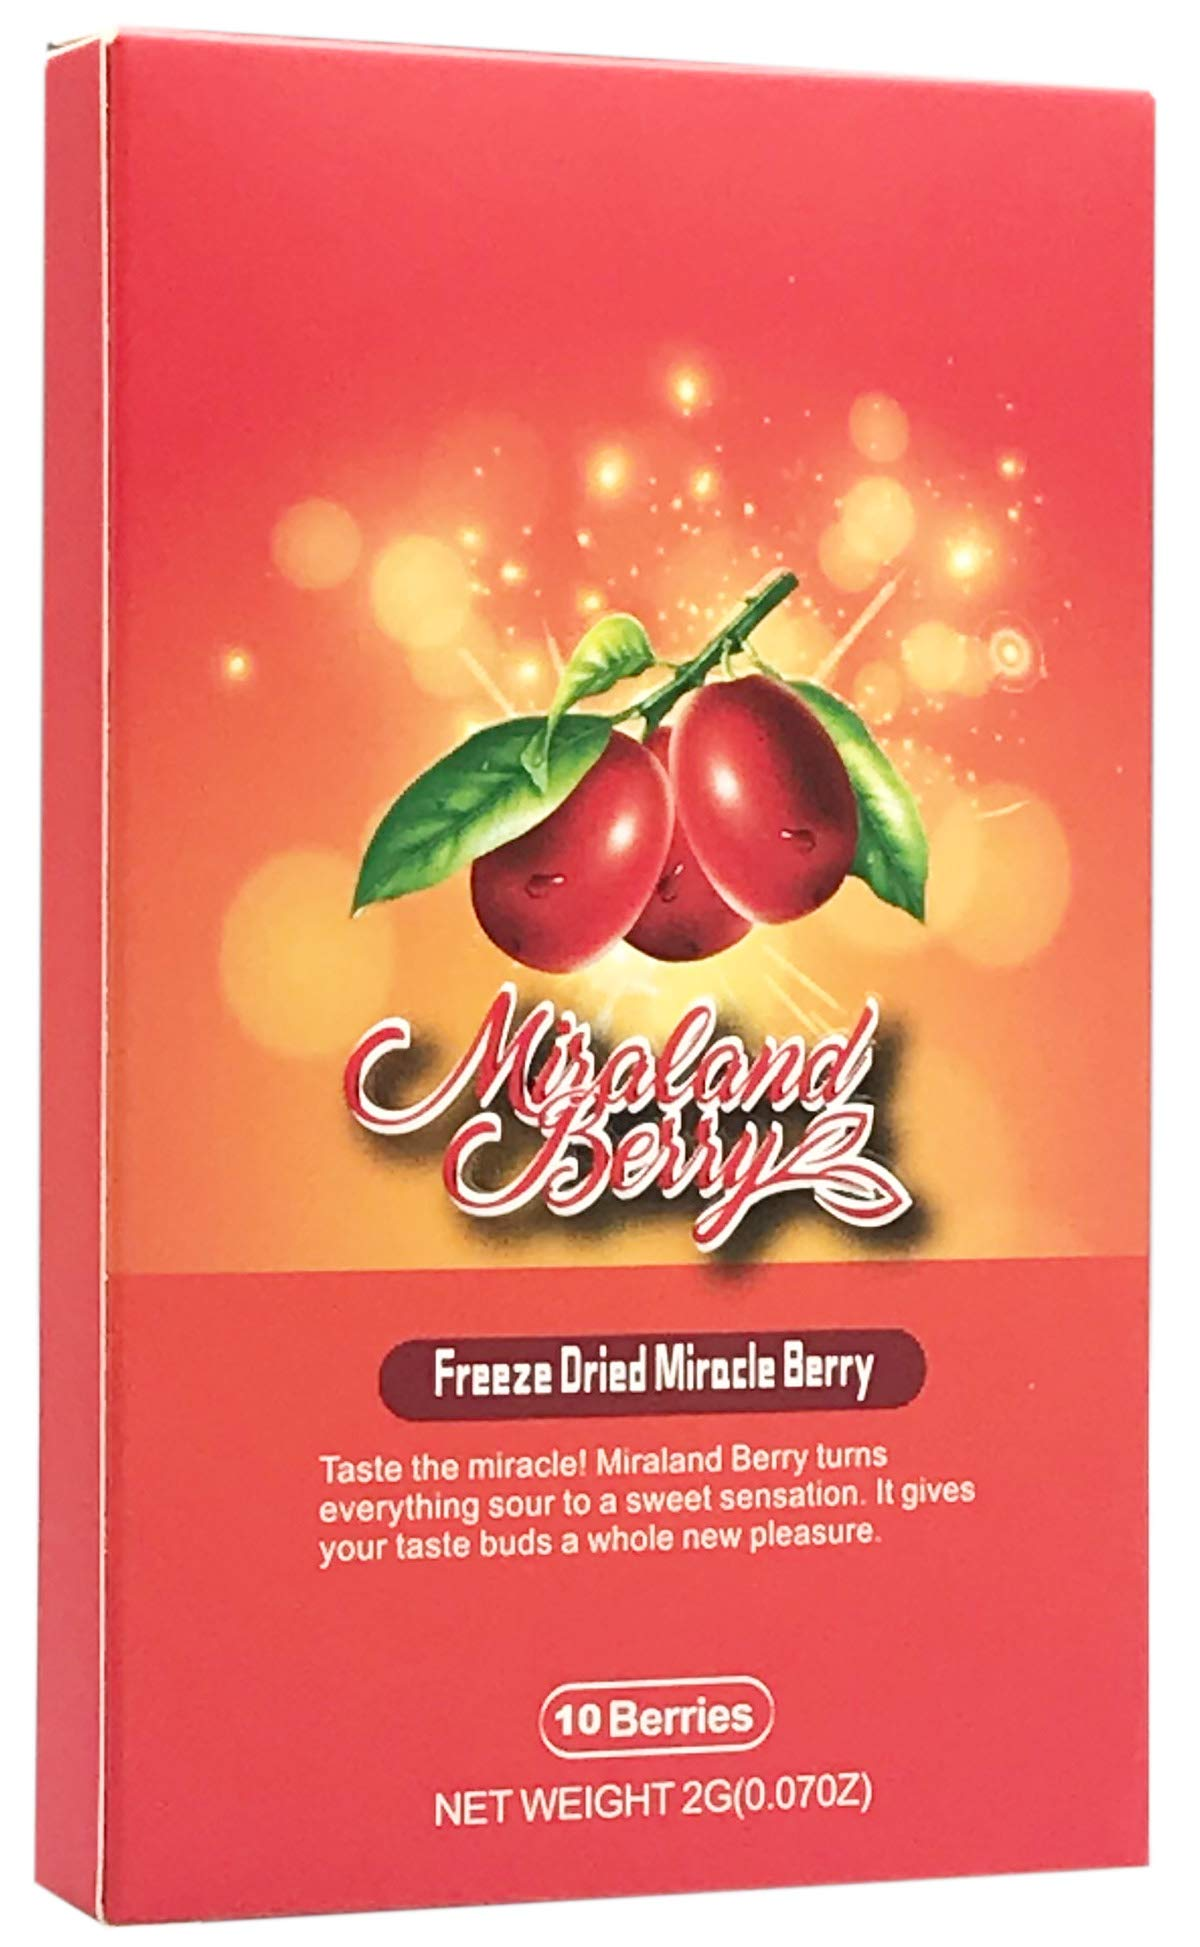 MiralandBerry Freeze Dried Miracle Berry, Miracle Fruit, 10 Whole Premium Berries, Cut Sugar Intake,Turns Sour Foods to Sweet, Great for Taste Tripping Party by MIRALAND BERRY